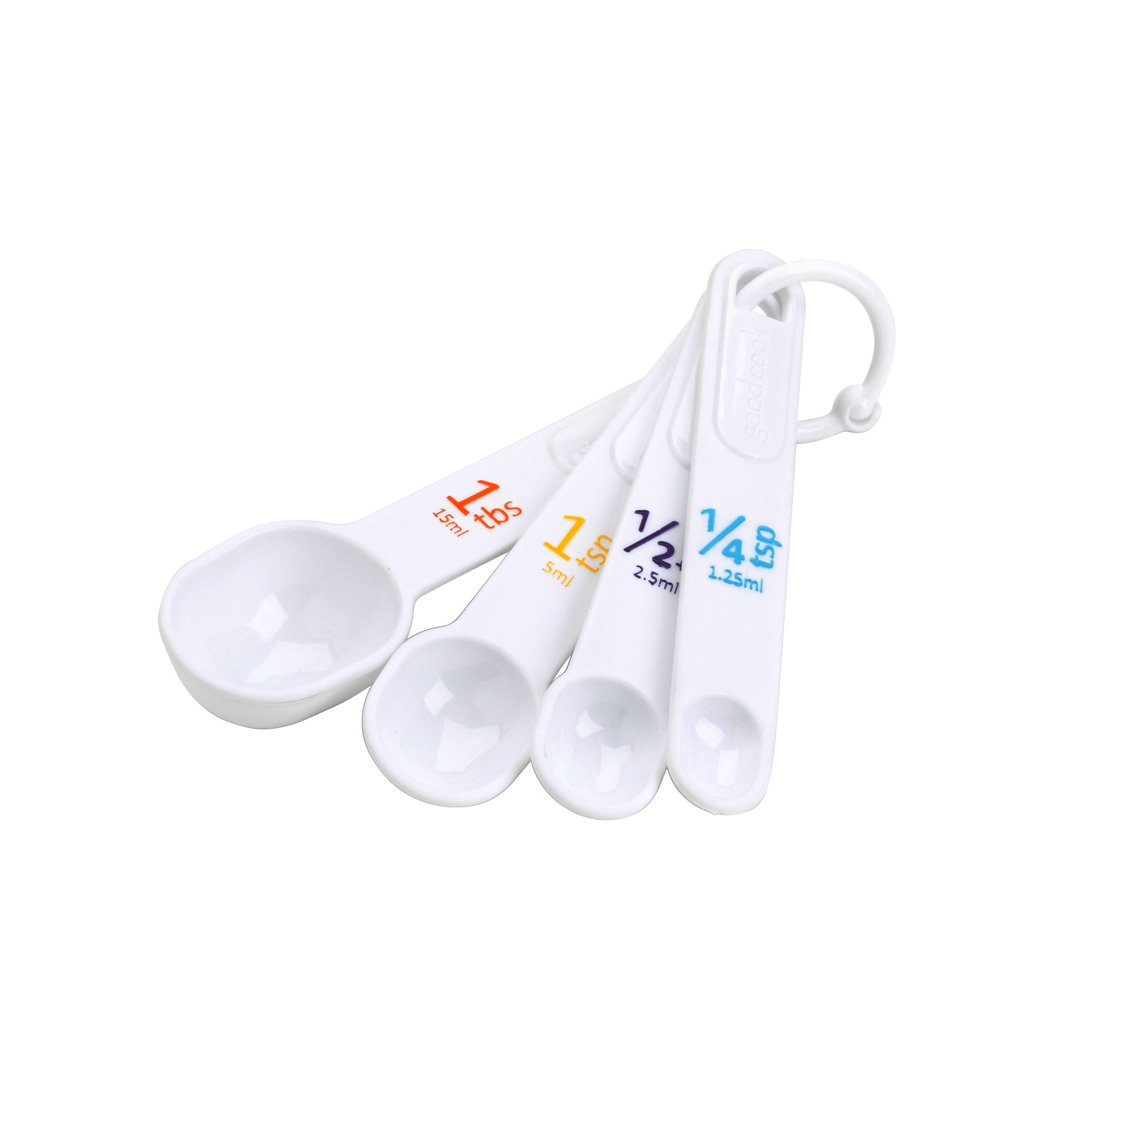 Good Cook Classic Set of 4 Plastic Measuring Spoons (19865)